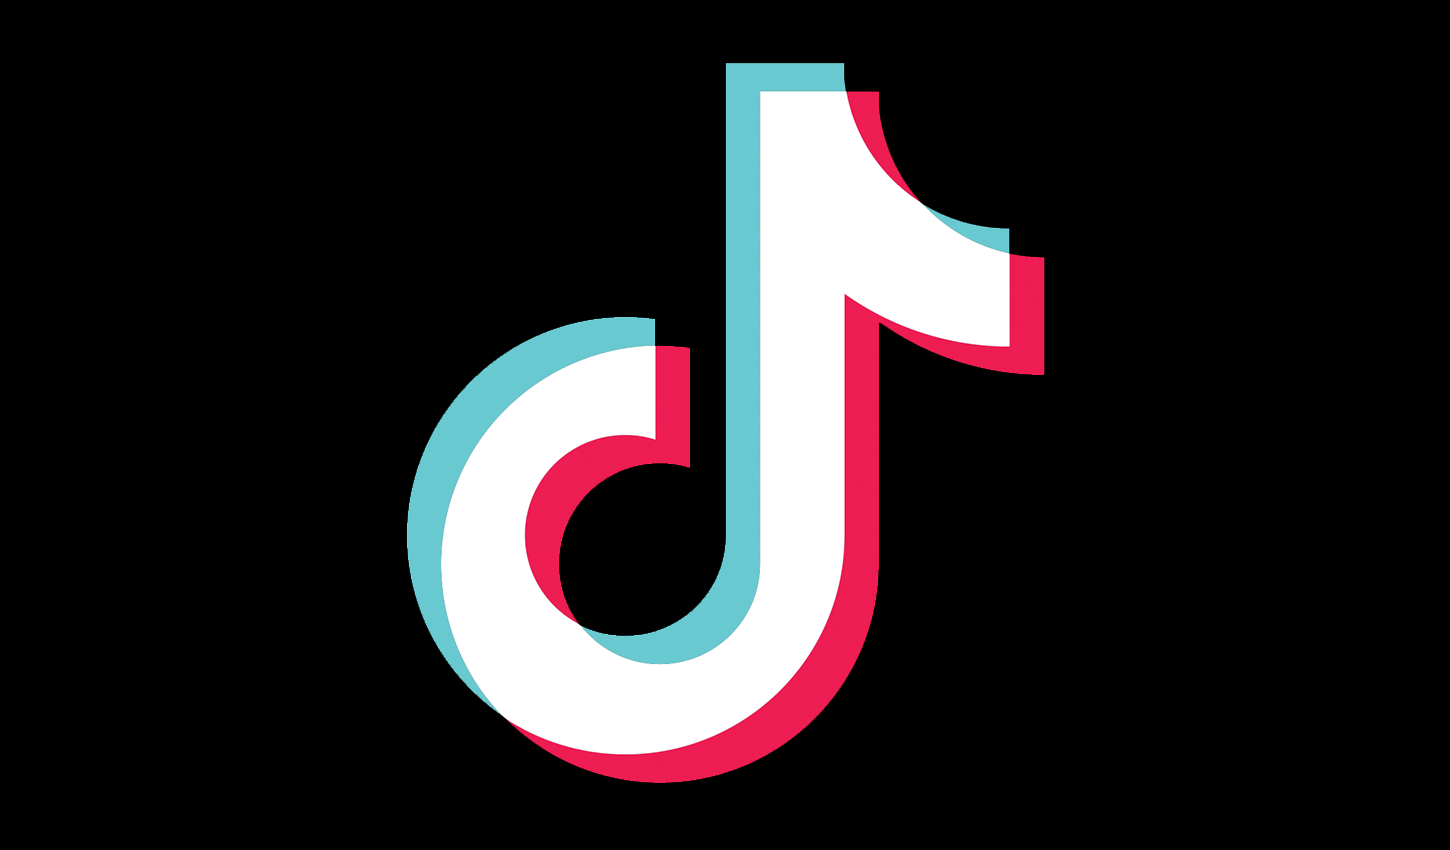 TikTok Added 188 Million New Users Last Quarter, Growing 70